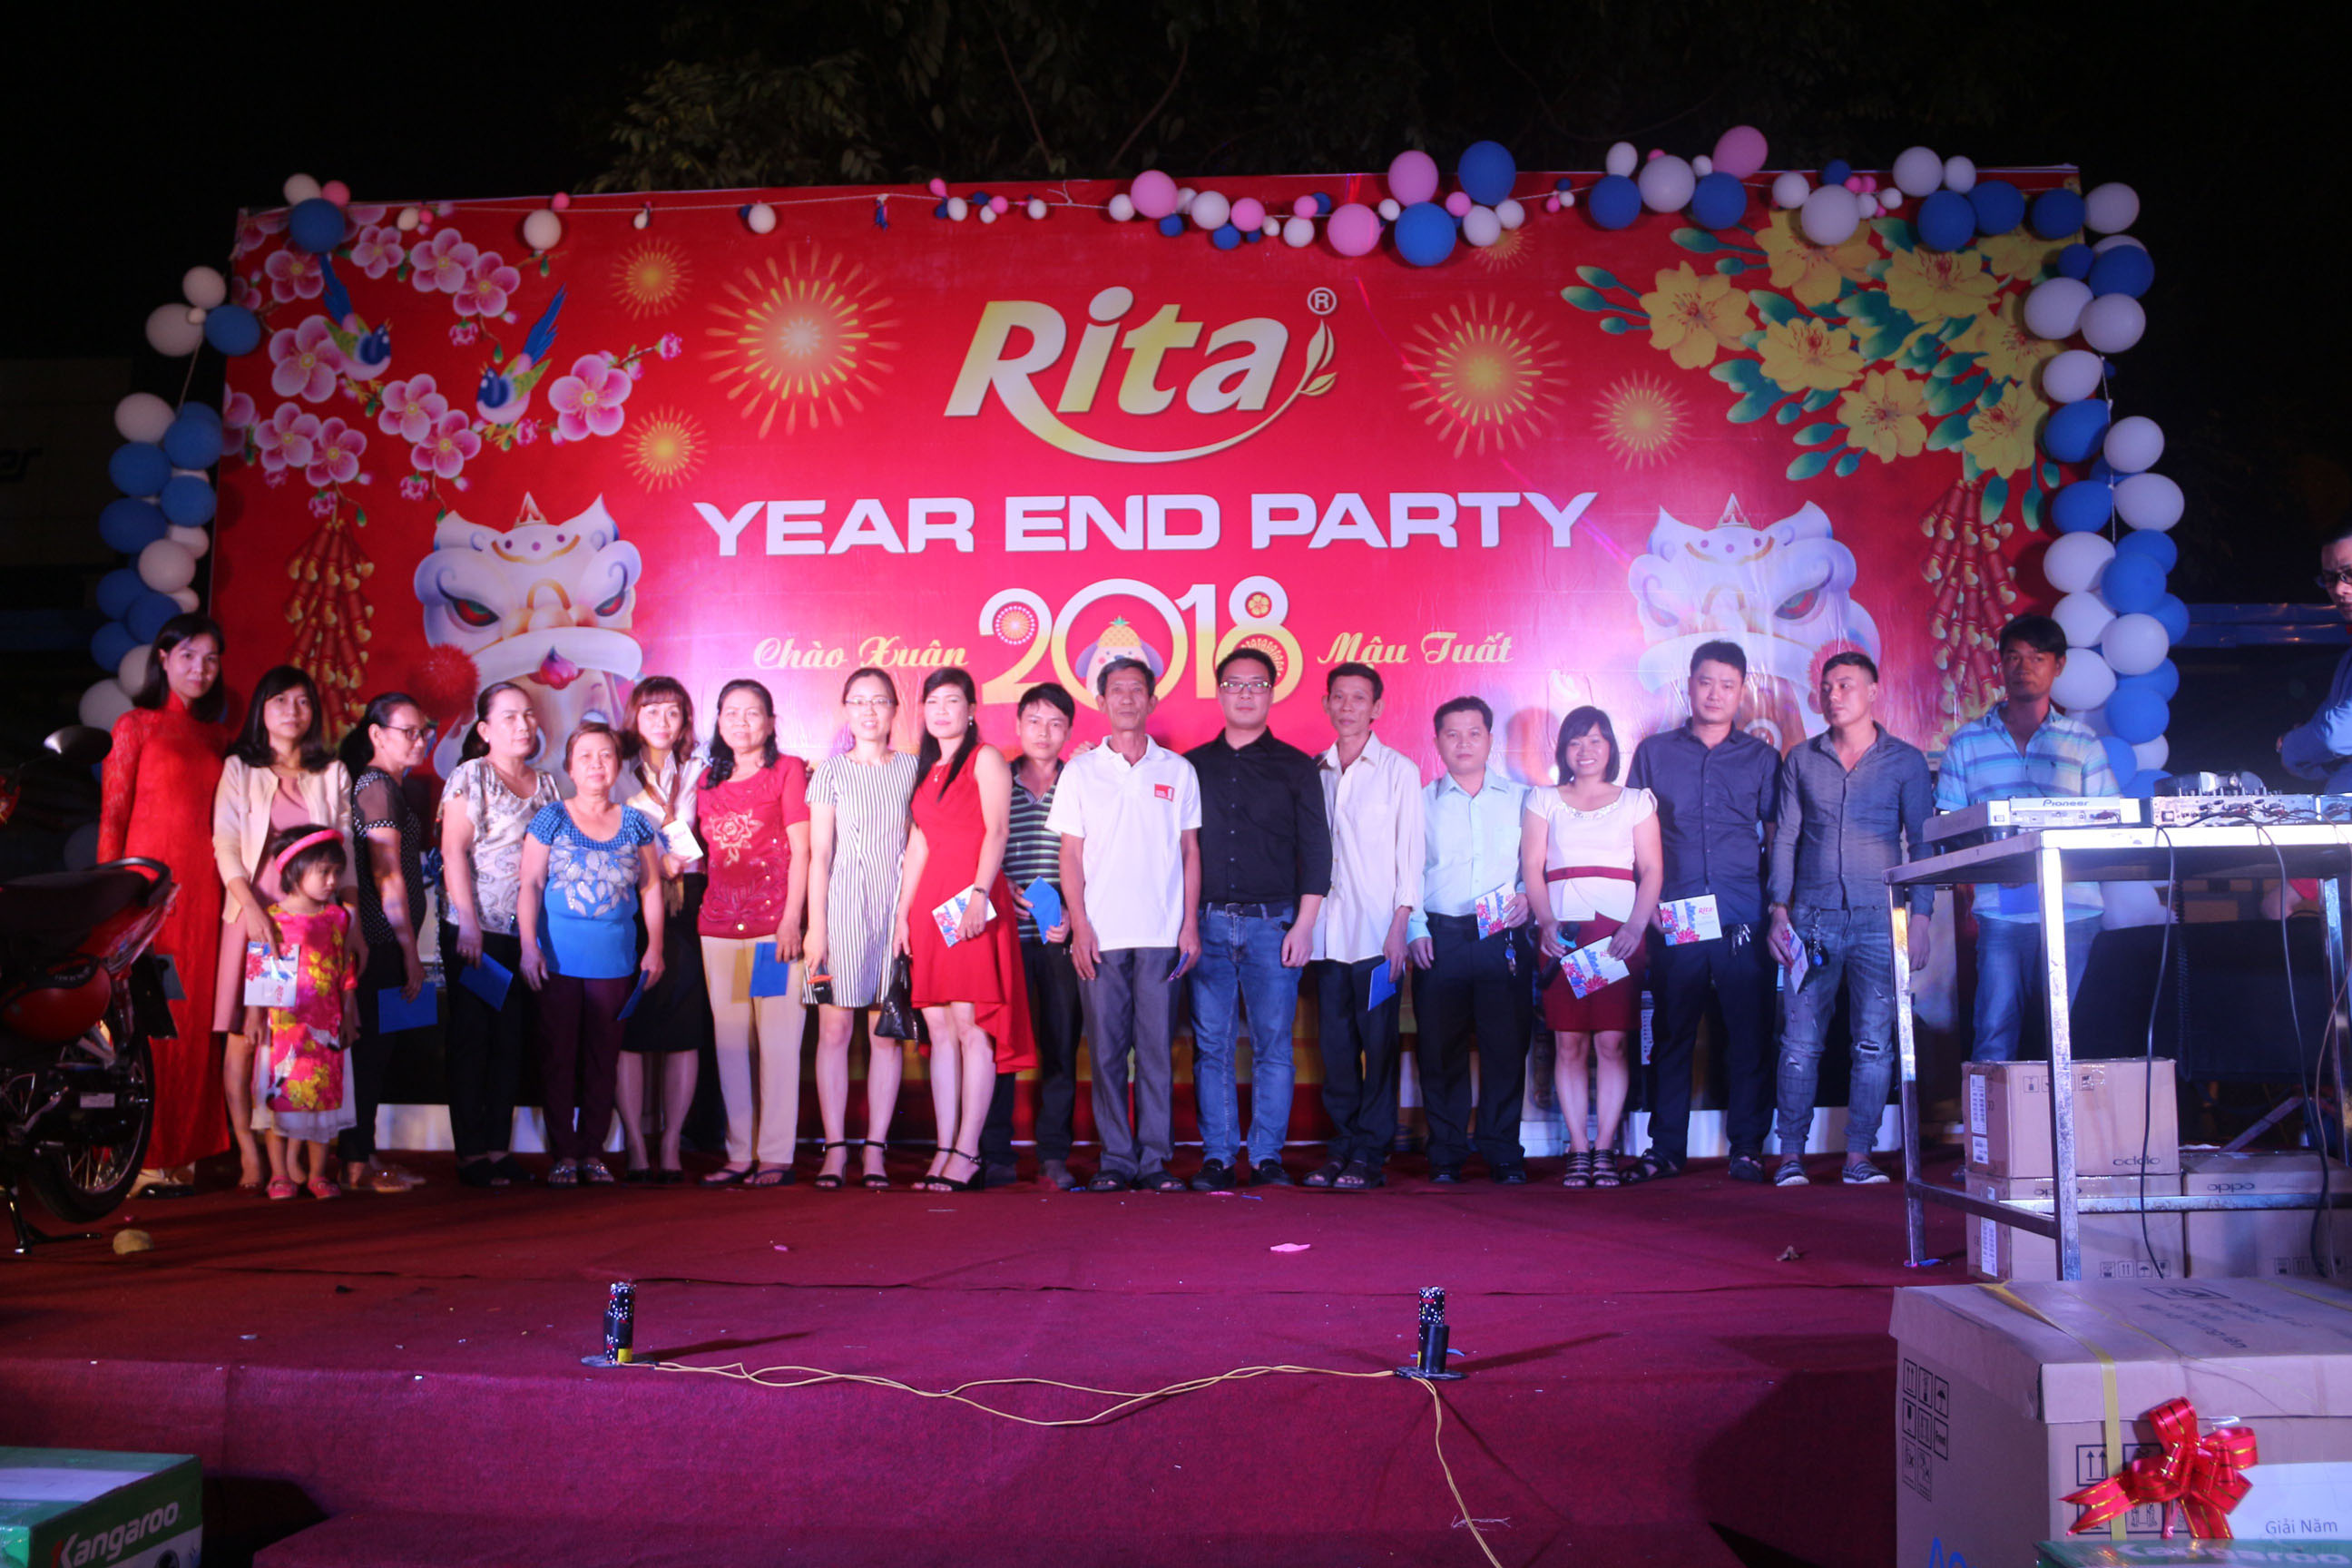 RITA Fruit Juice Manufacturing Suppliers - Party year end 2017 9